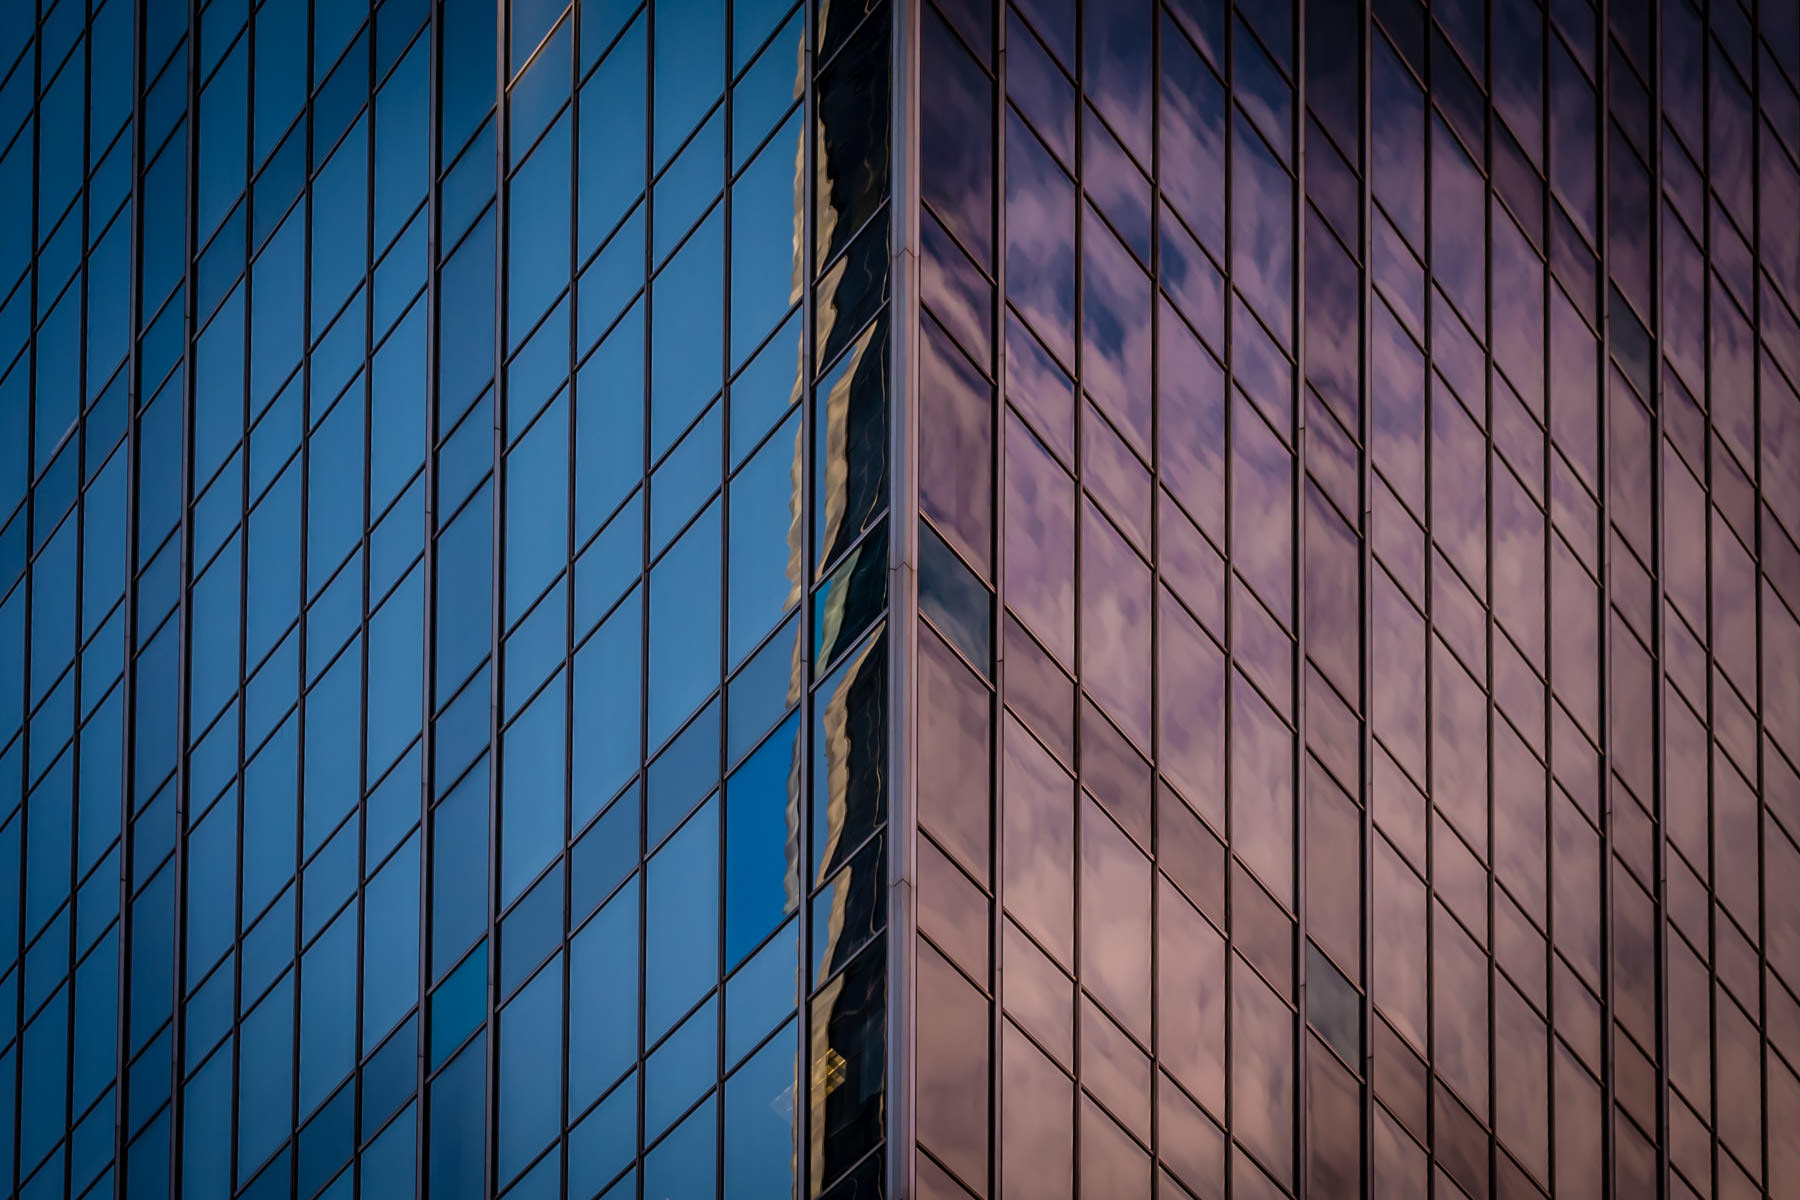 An abstract view of an exterior edge of Downtown Dallas' Renaissance Tower as its mirrored windows catch the early morning sun.